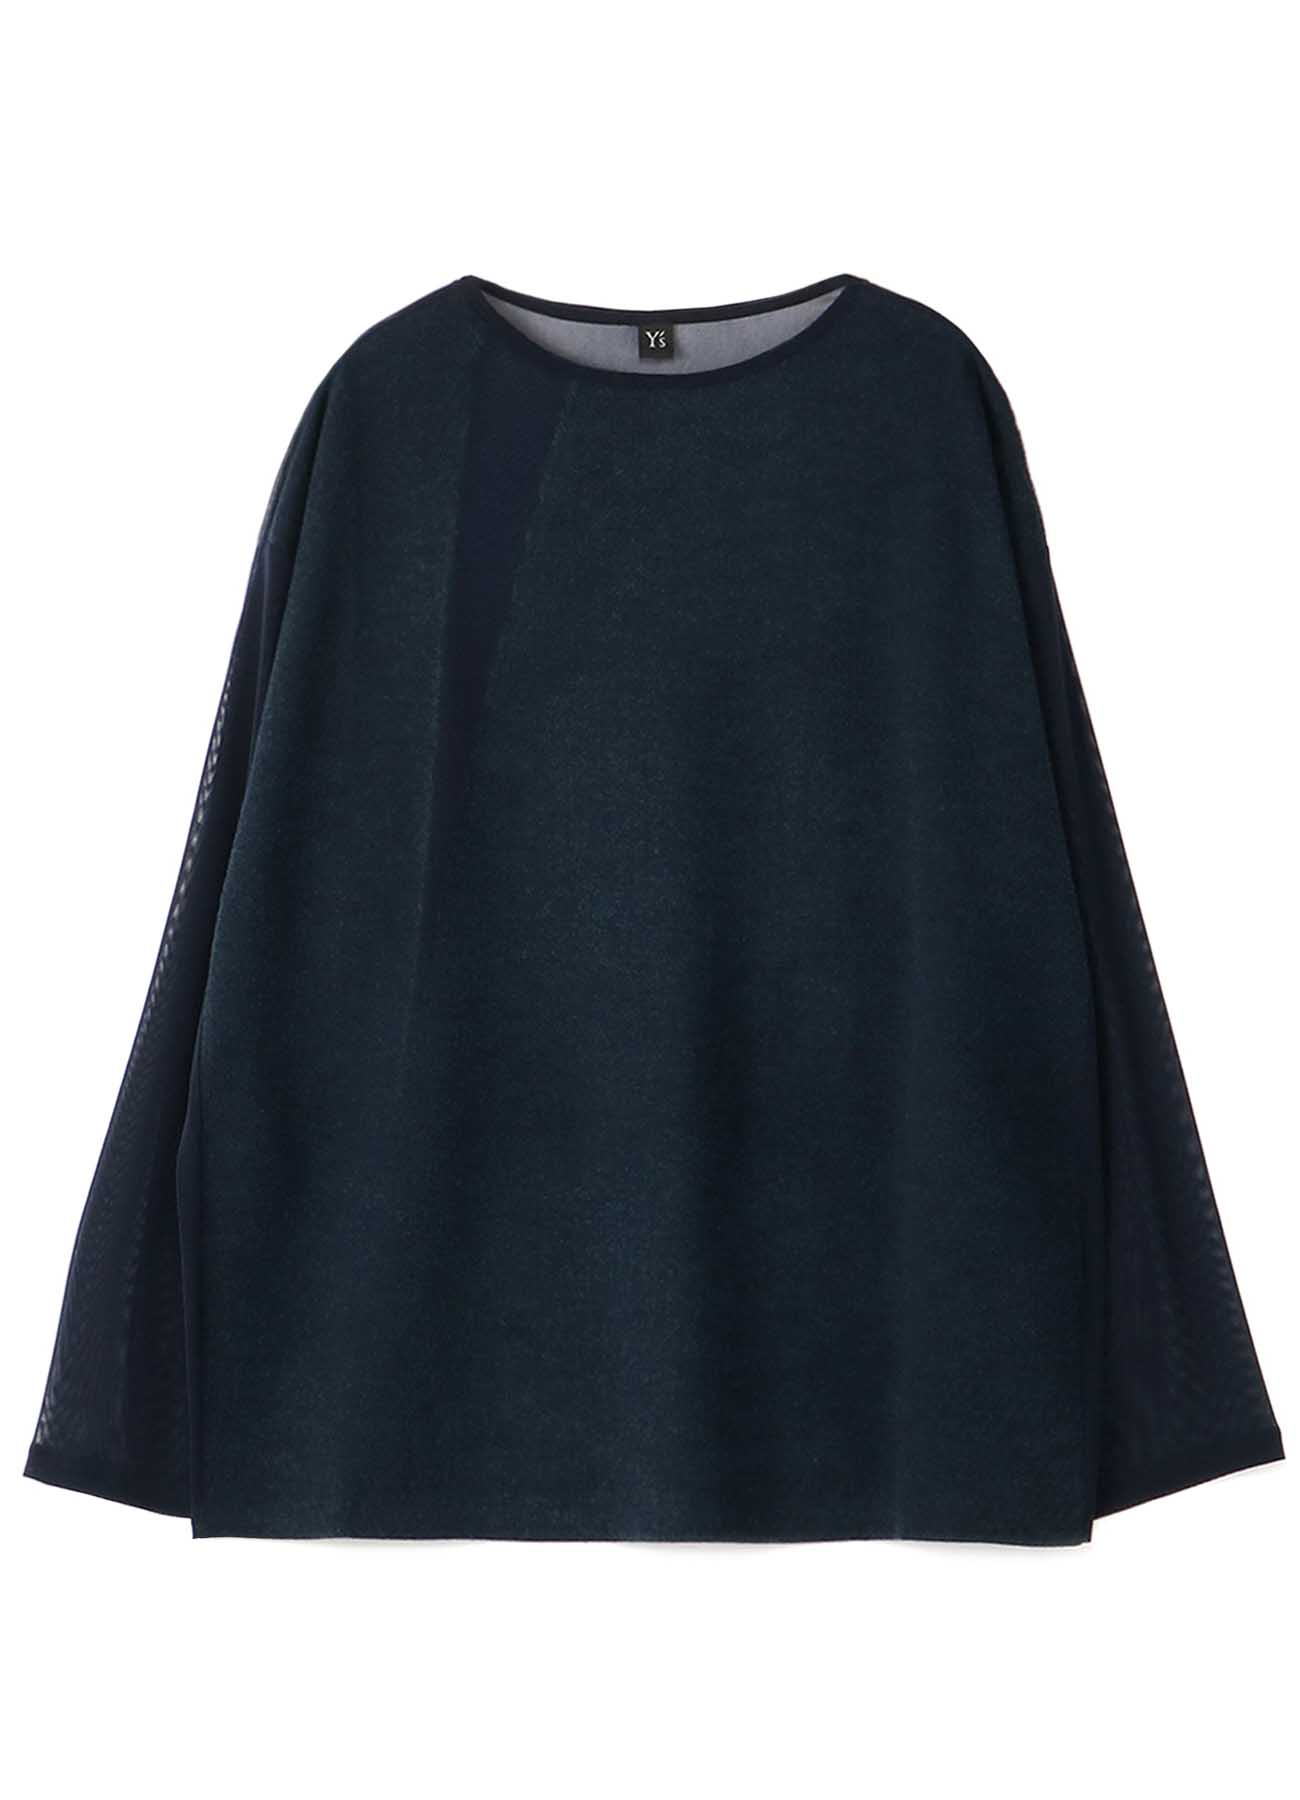 POLYESTER TULLE x WOOL NEEDLE PUNCH BOAT NECK BIG T-SHIRT